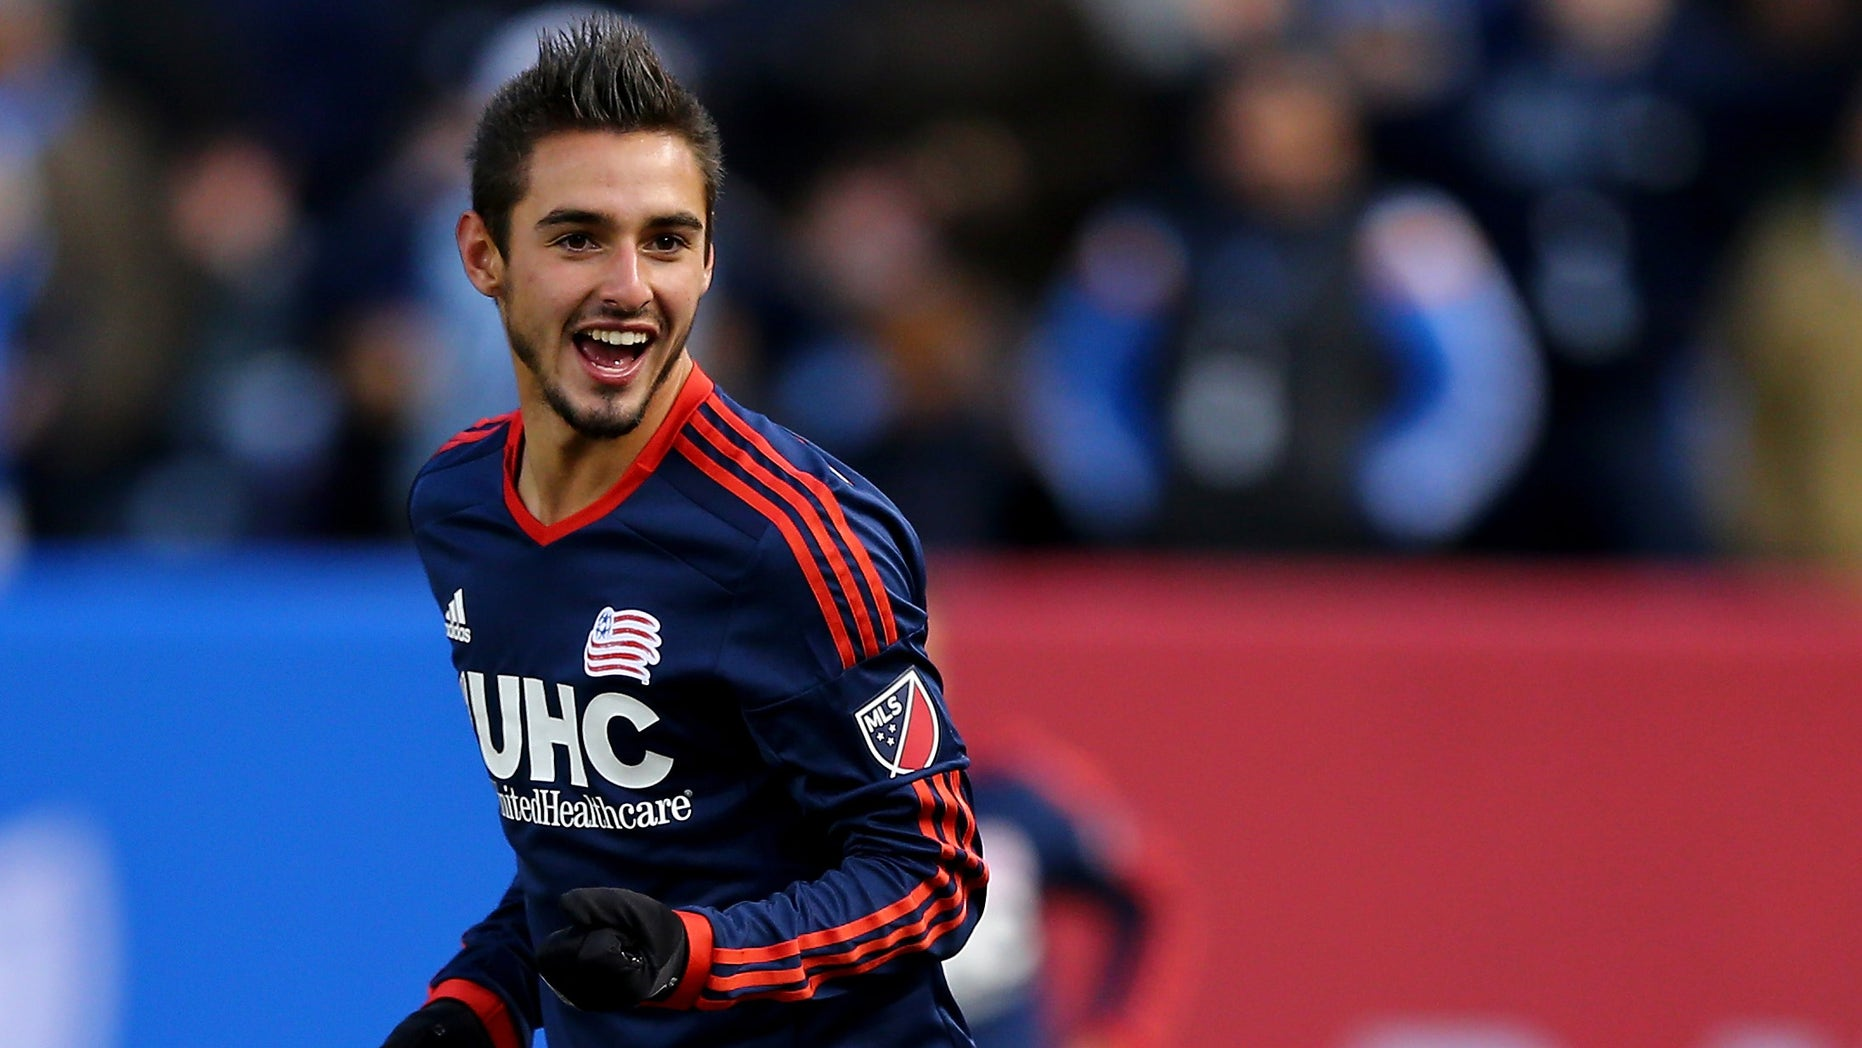 NEW YORK, NY - MARCH 15:  Diego Fagundez #14 of New England Revolution reacts in the second half against the New York City FC during the inaugural game of the New York City FC at Yankee Stadium on March 15, 2015 in the Bronx borough of New York City.The New York City FC defeated the New England Revolution 2-0.  (Photo by Elsa/Getty Images)